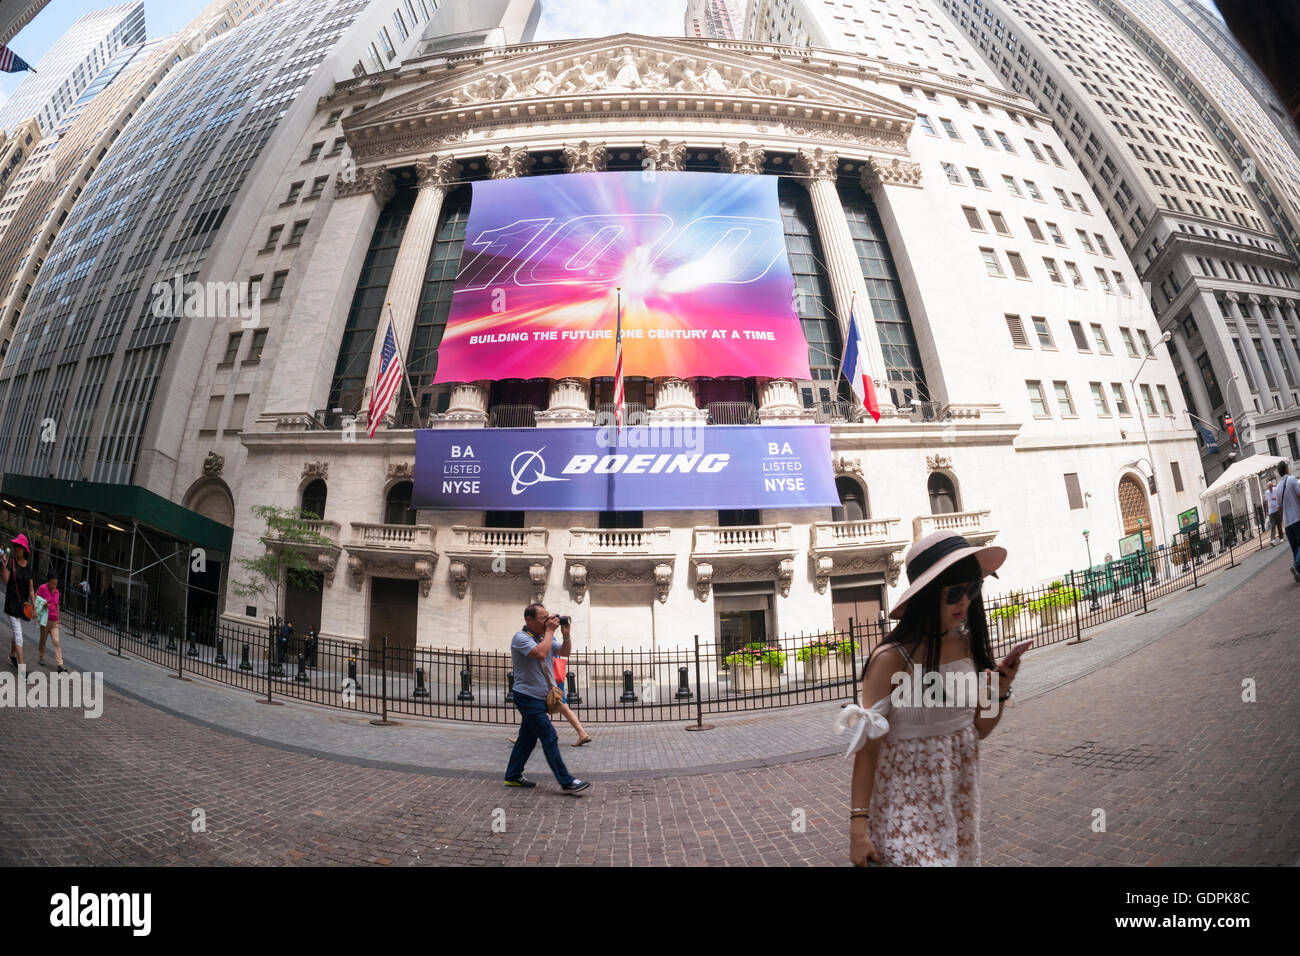 A banner for the Boeing Company decorates the front of the New York Stock Exchange in New York on Friday, July 15, - Stock Image